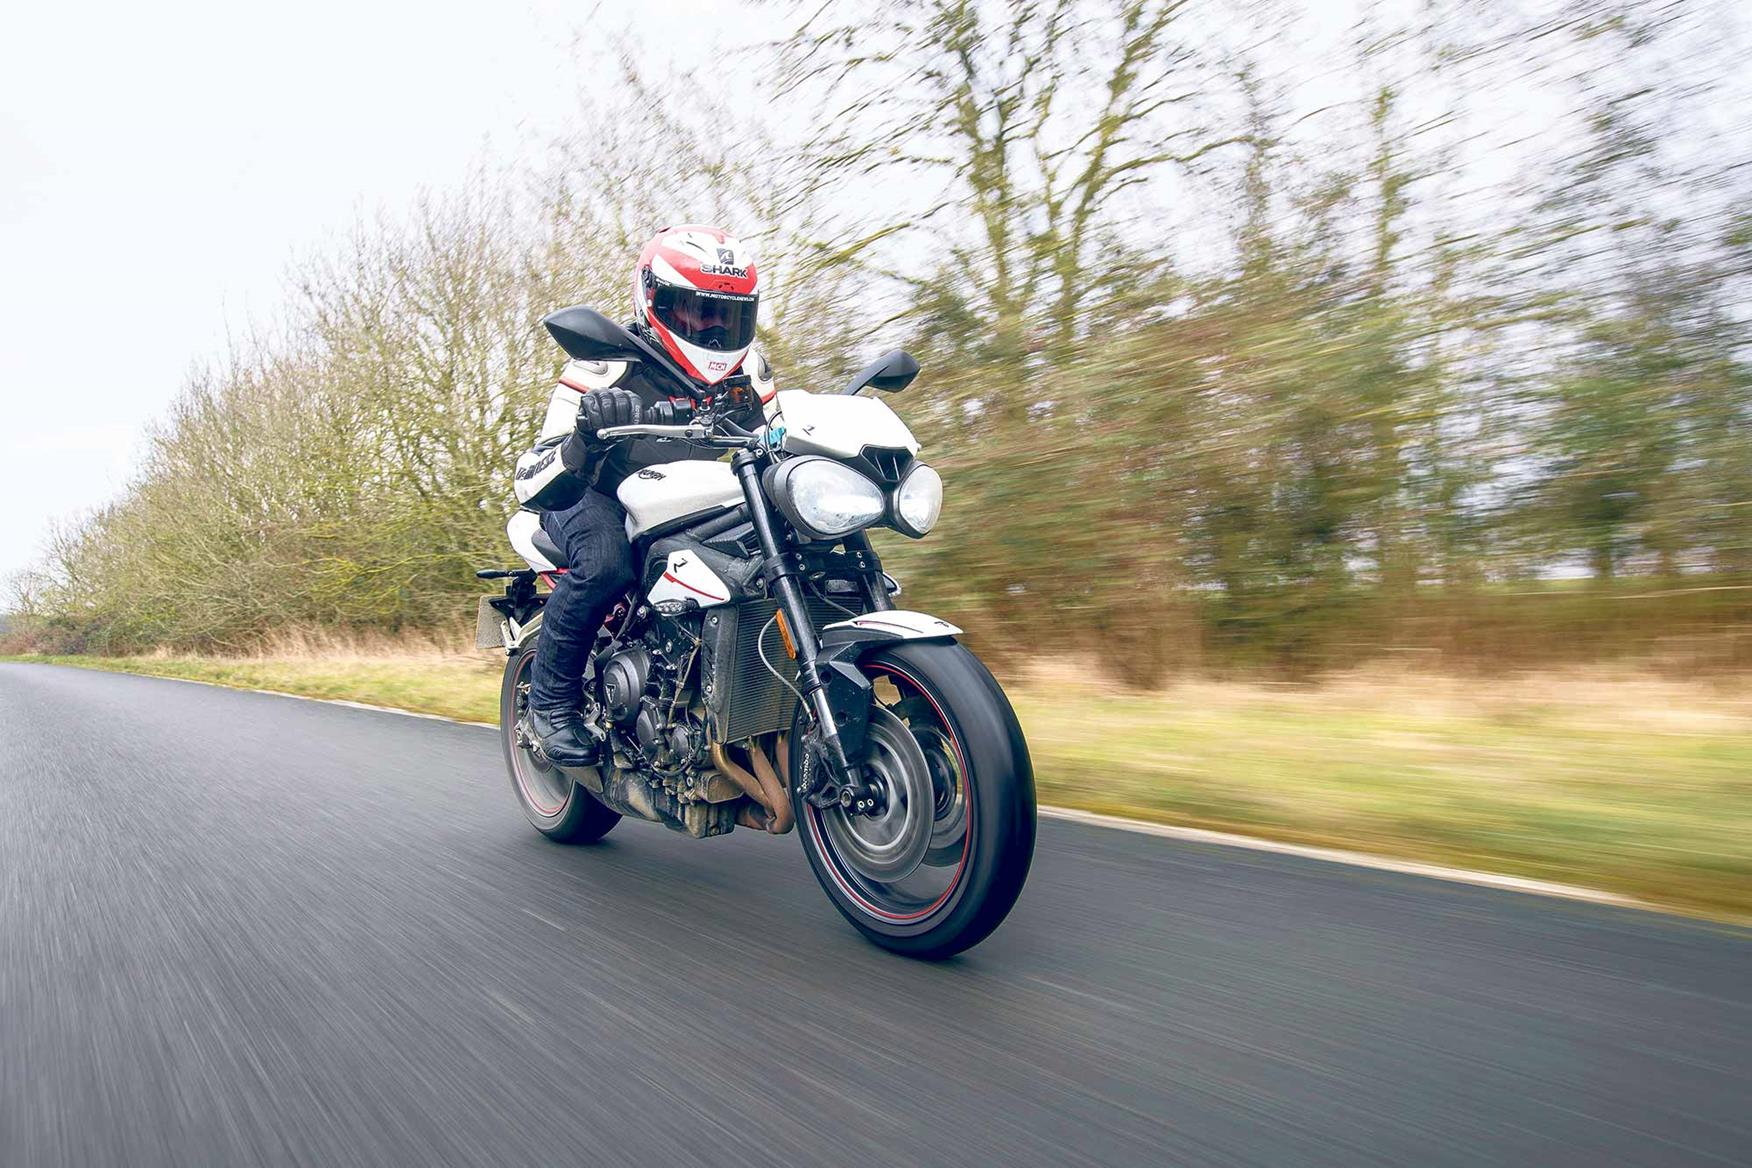 Amy Williams rates the Street Triple R